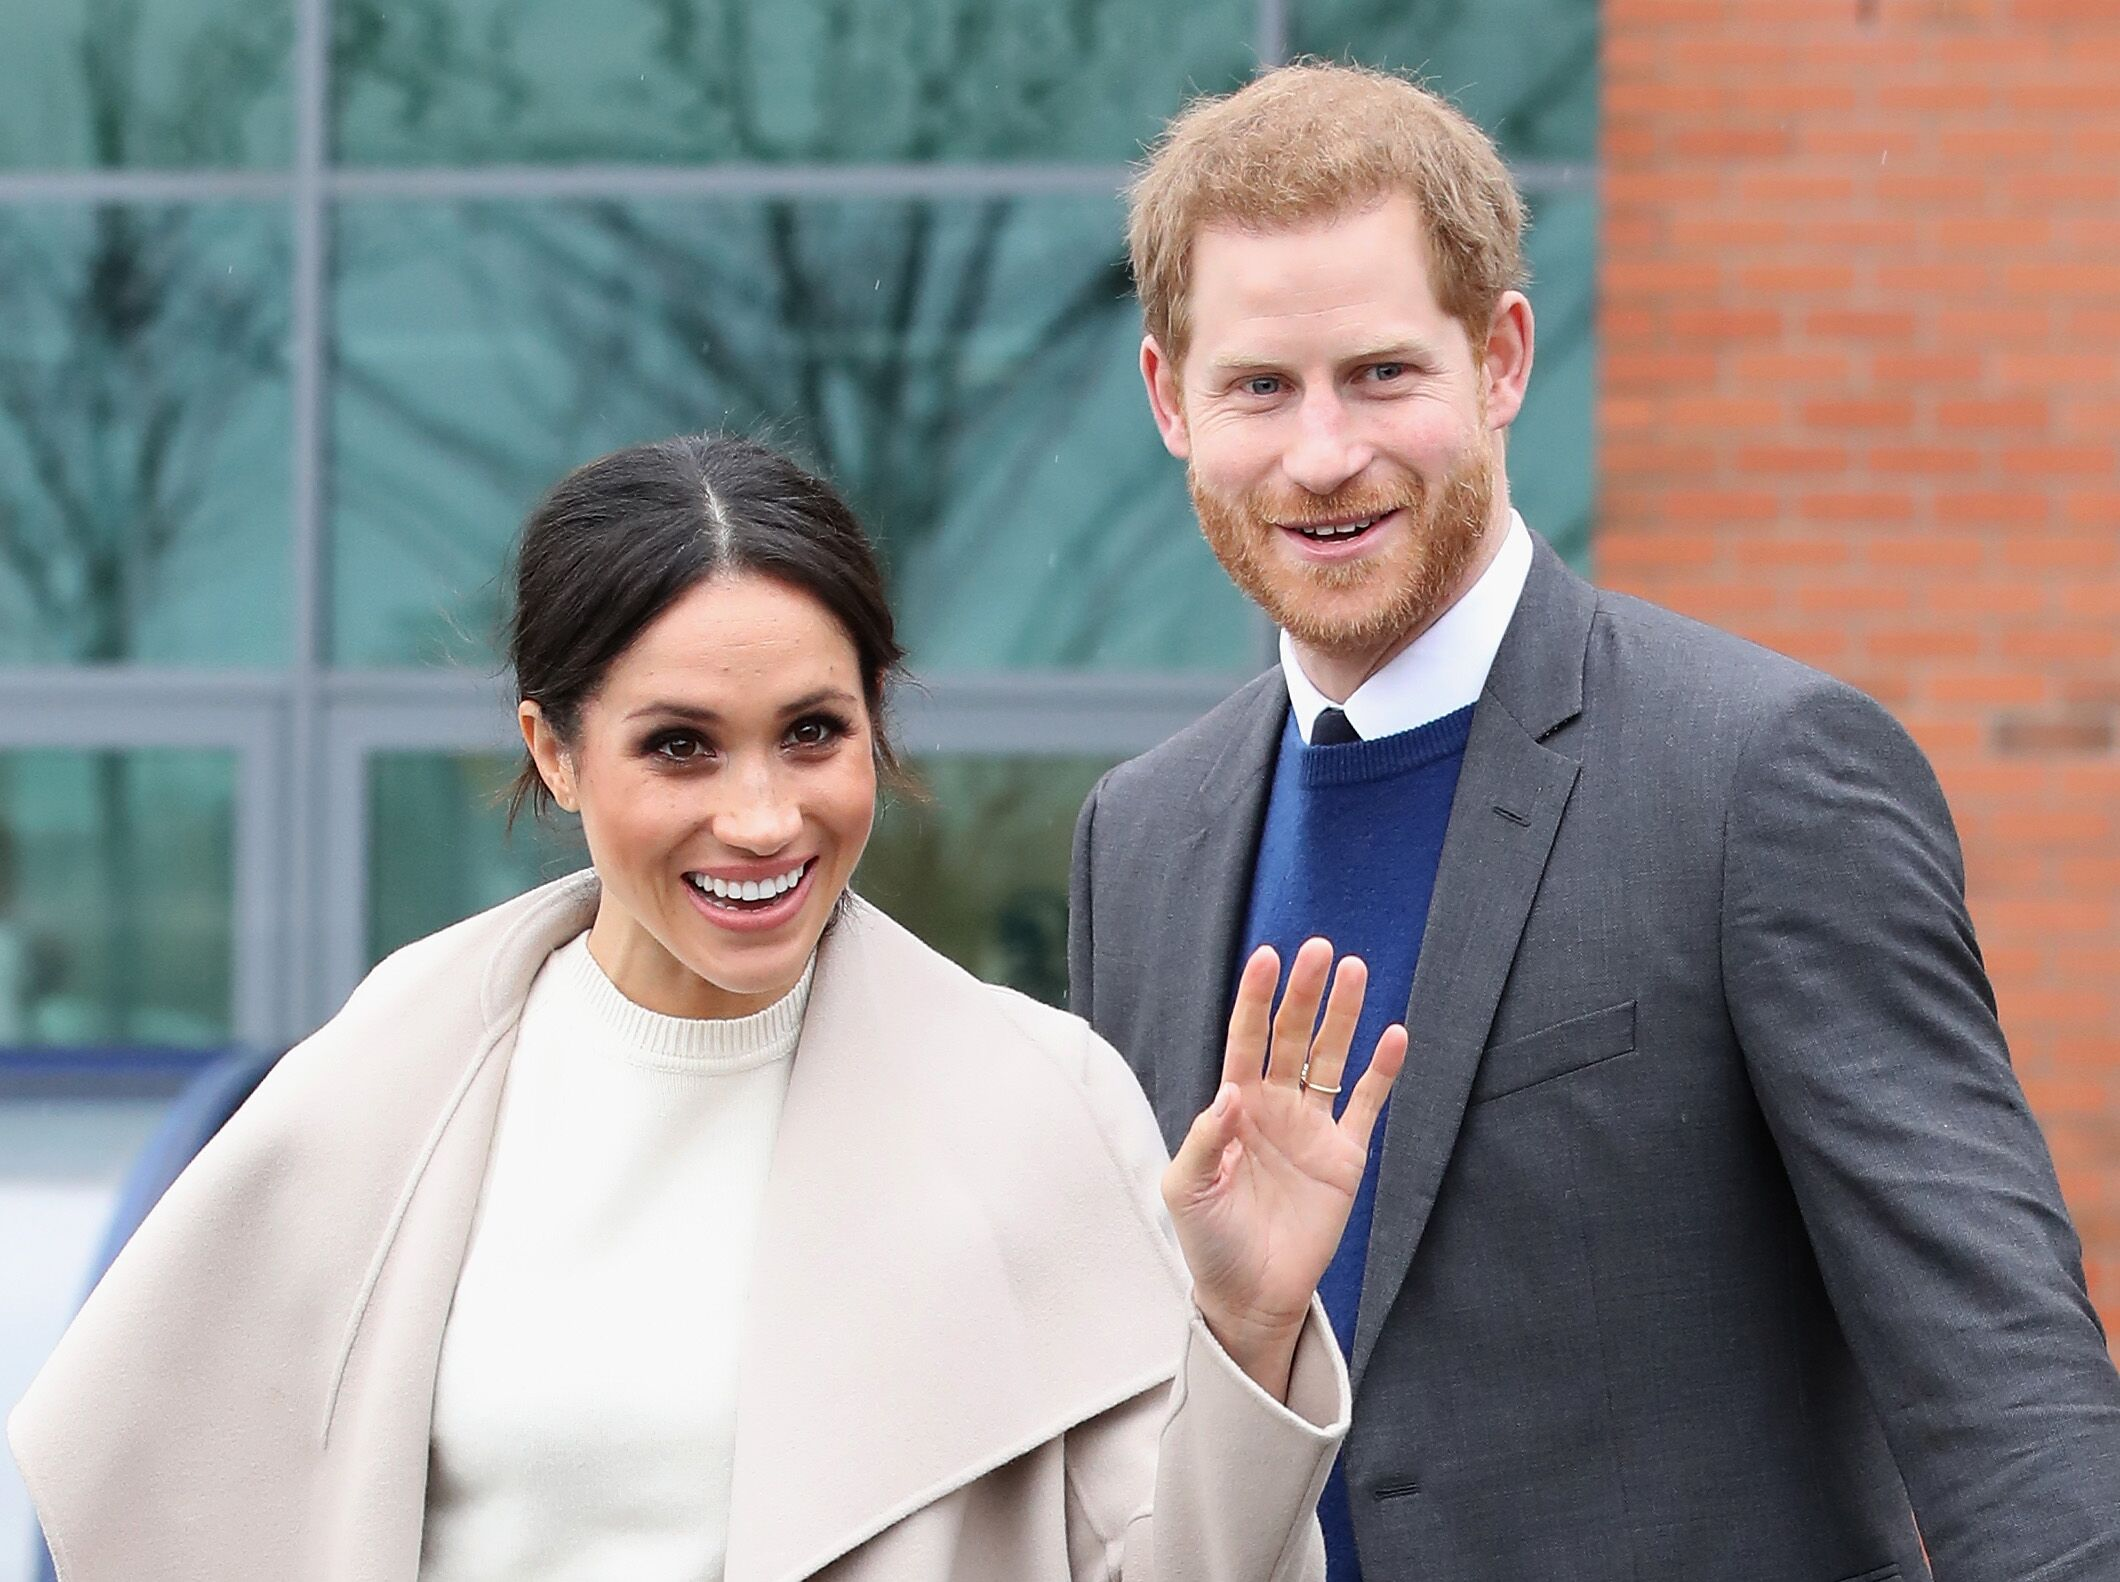 Prince Harry and Meghan Markle depart from Catalyst Inc, Northern Ireland's next generation science park on March 23, 2018 in Belfast, Nothern Ireland. | Photo: Getty Images